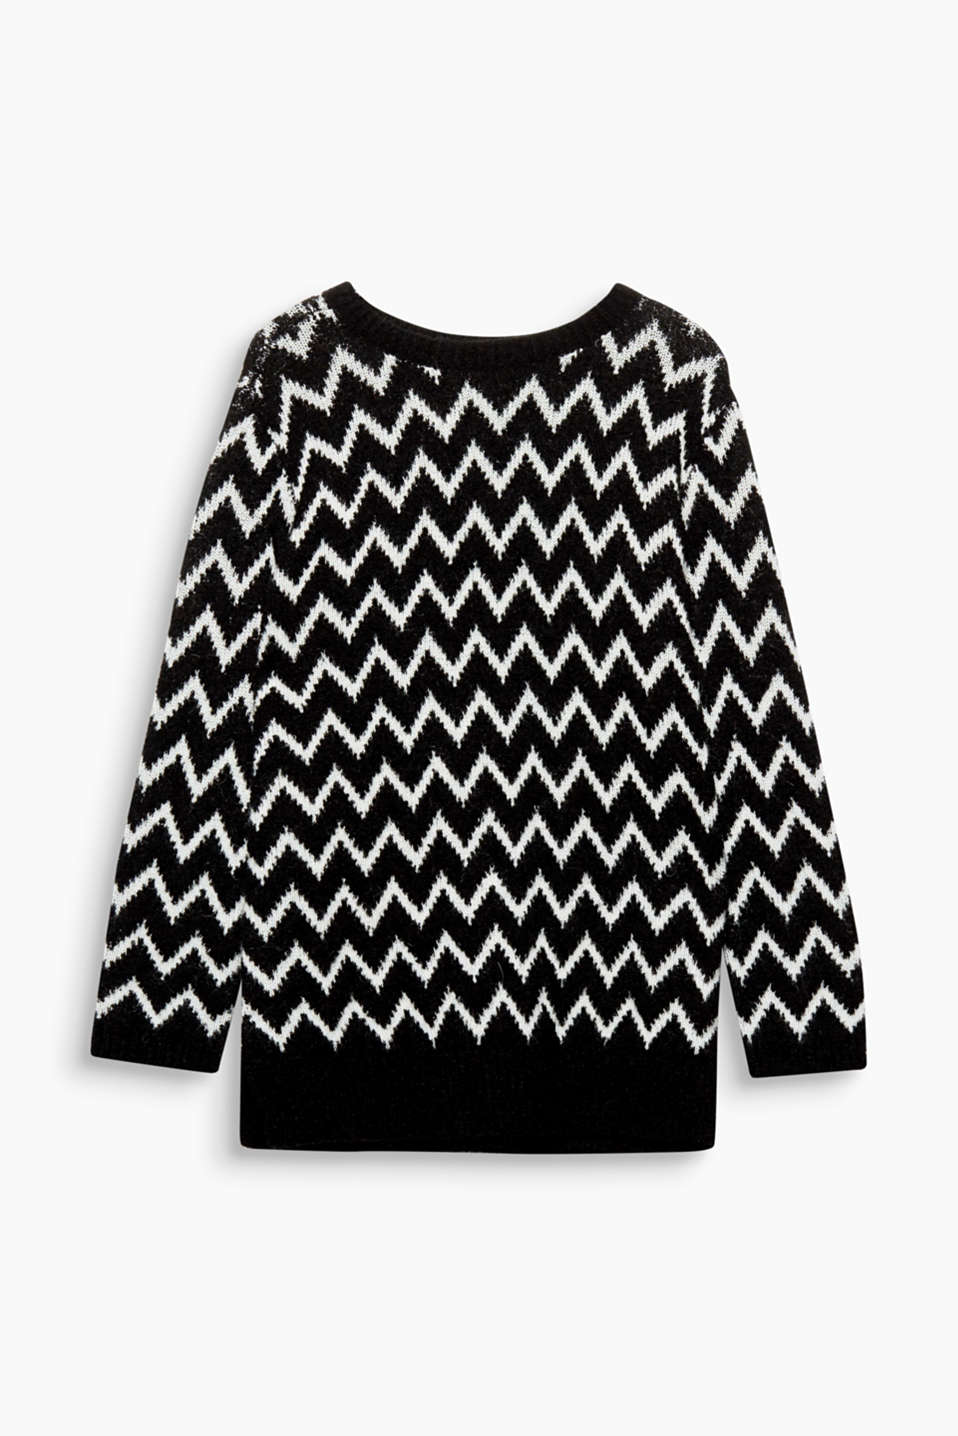 We love Knitwear! Dieser Oversized-Pullover gefällt dank coolem Zick Zack-Muster im Black and White-Look.